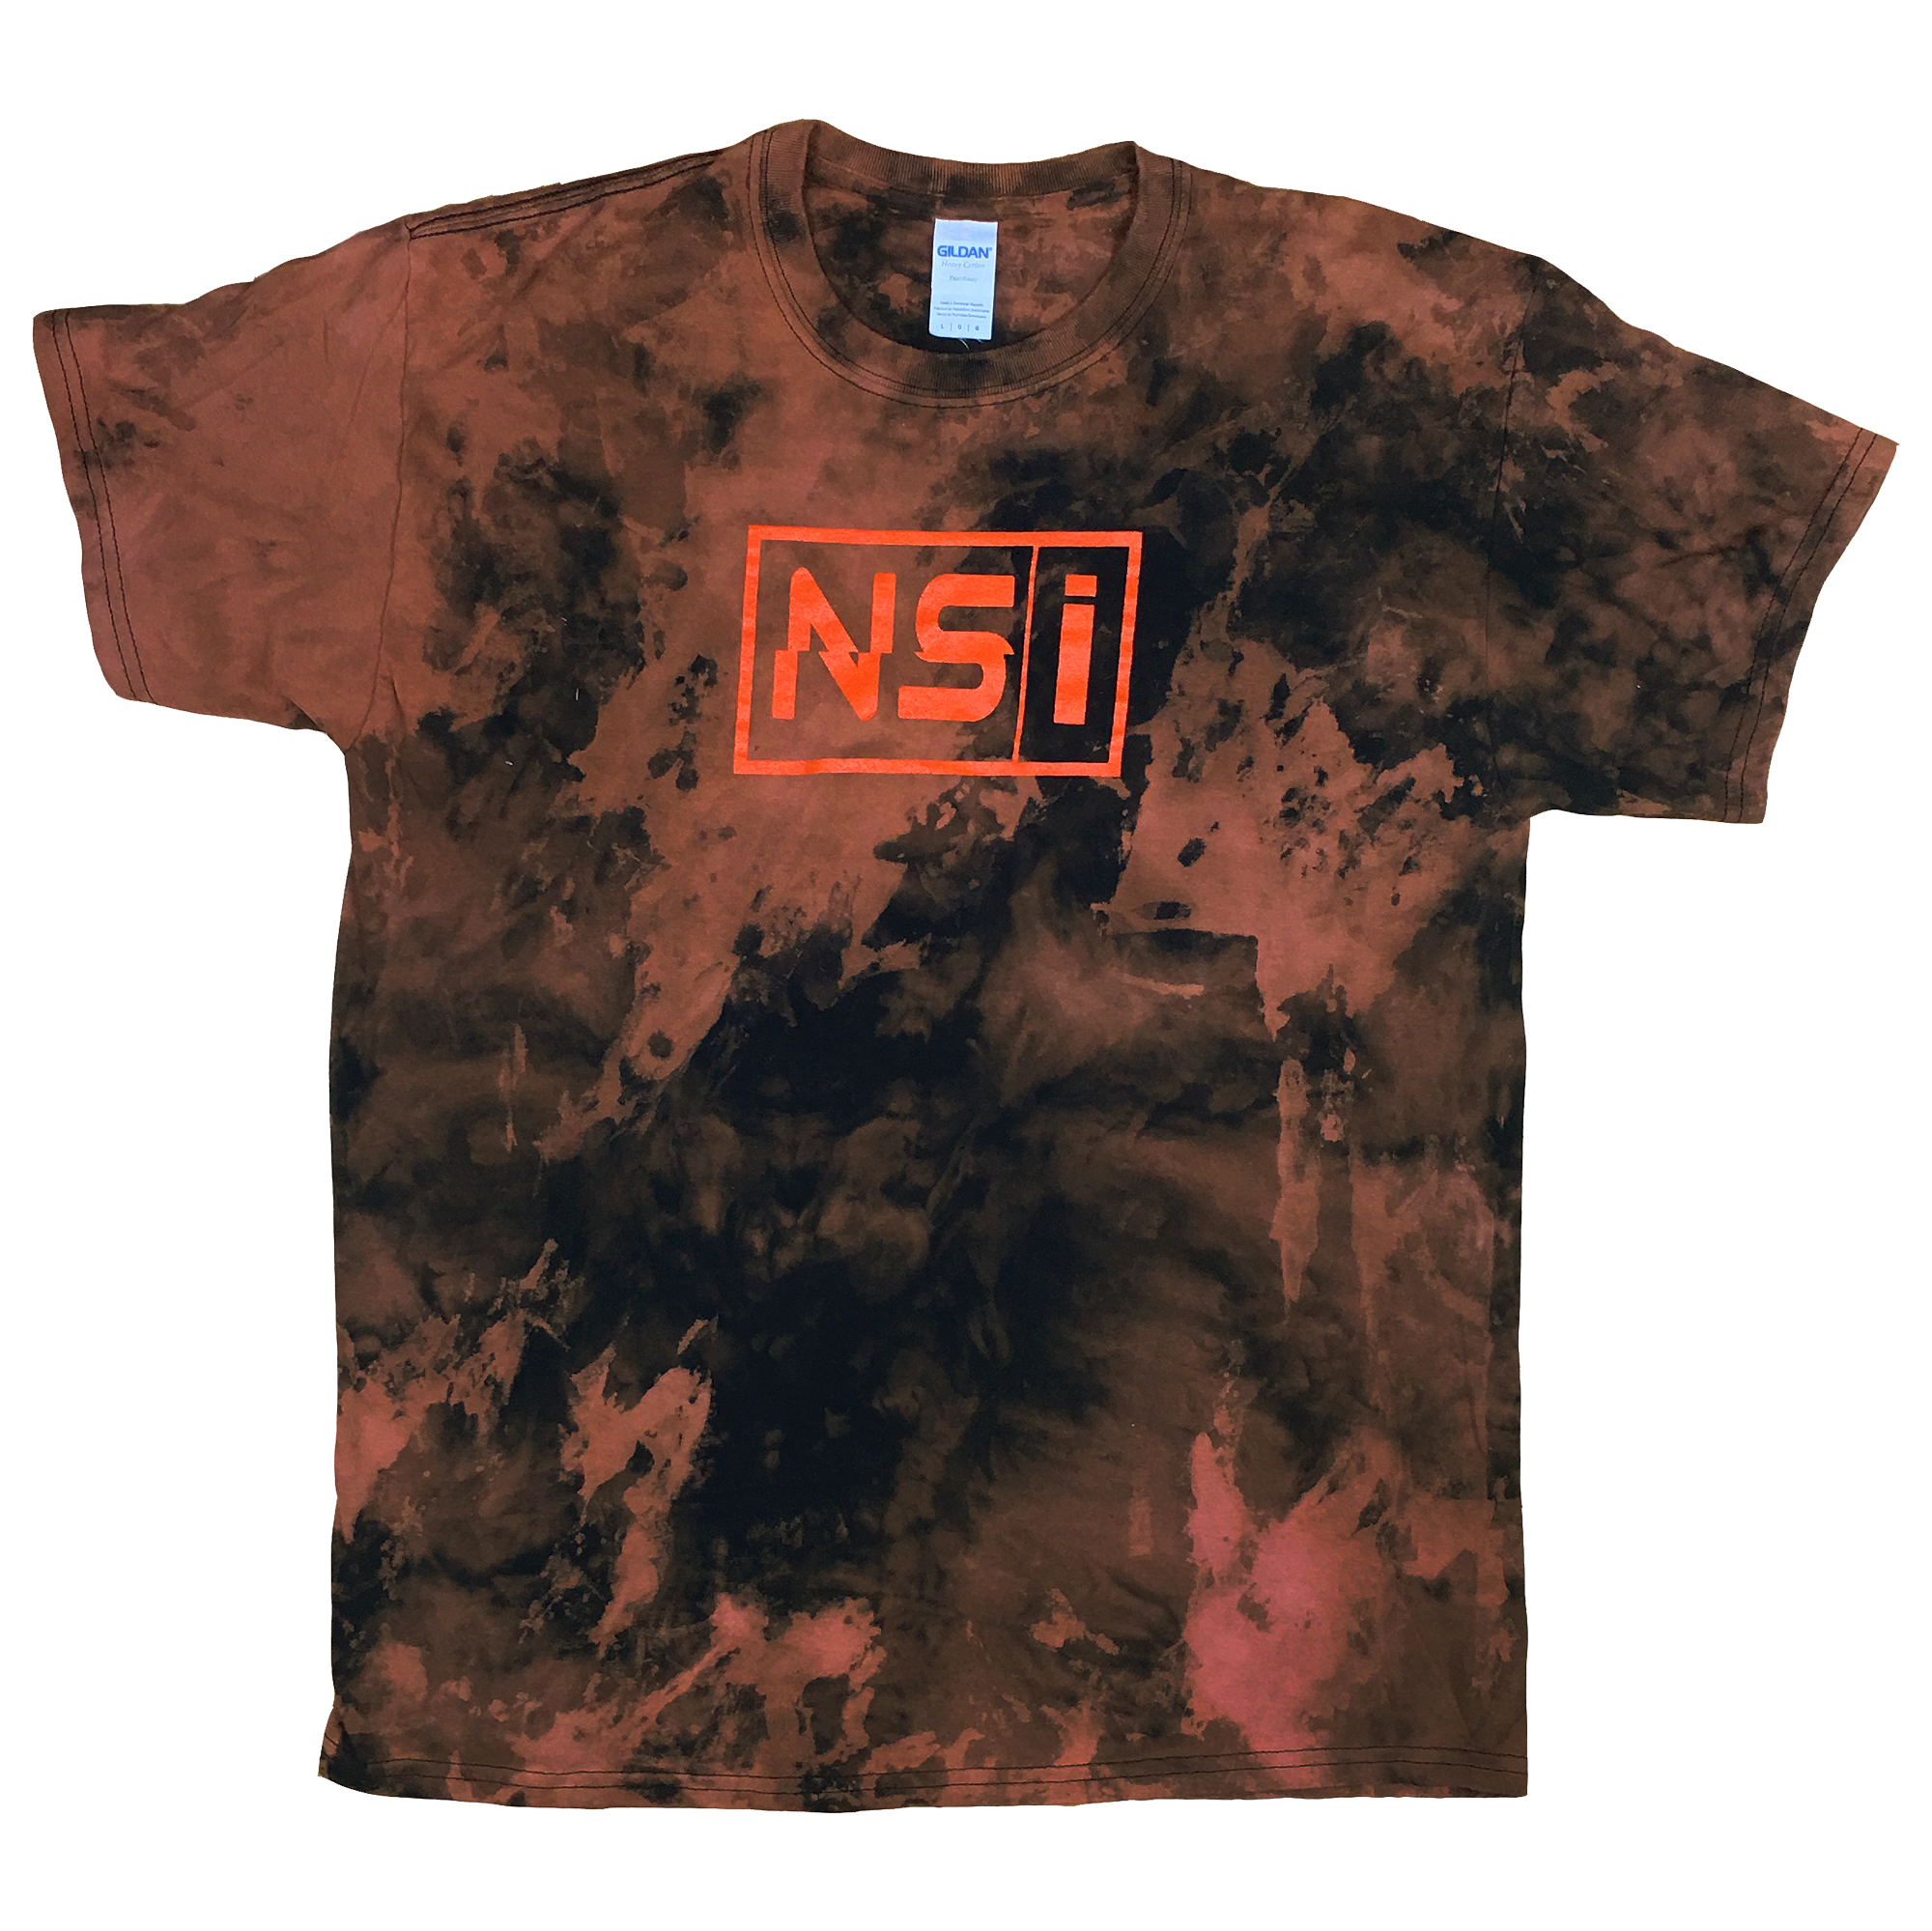 NSI-BLEACH-FRONT.png